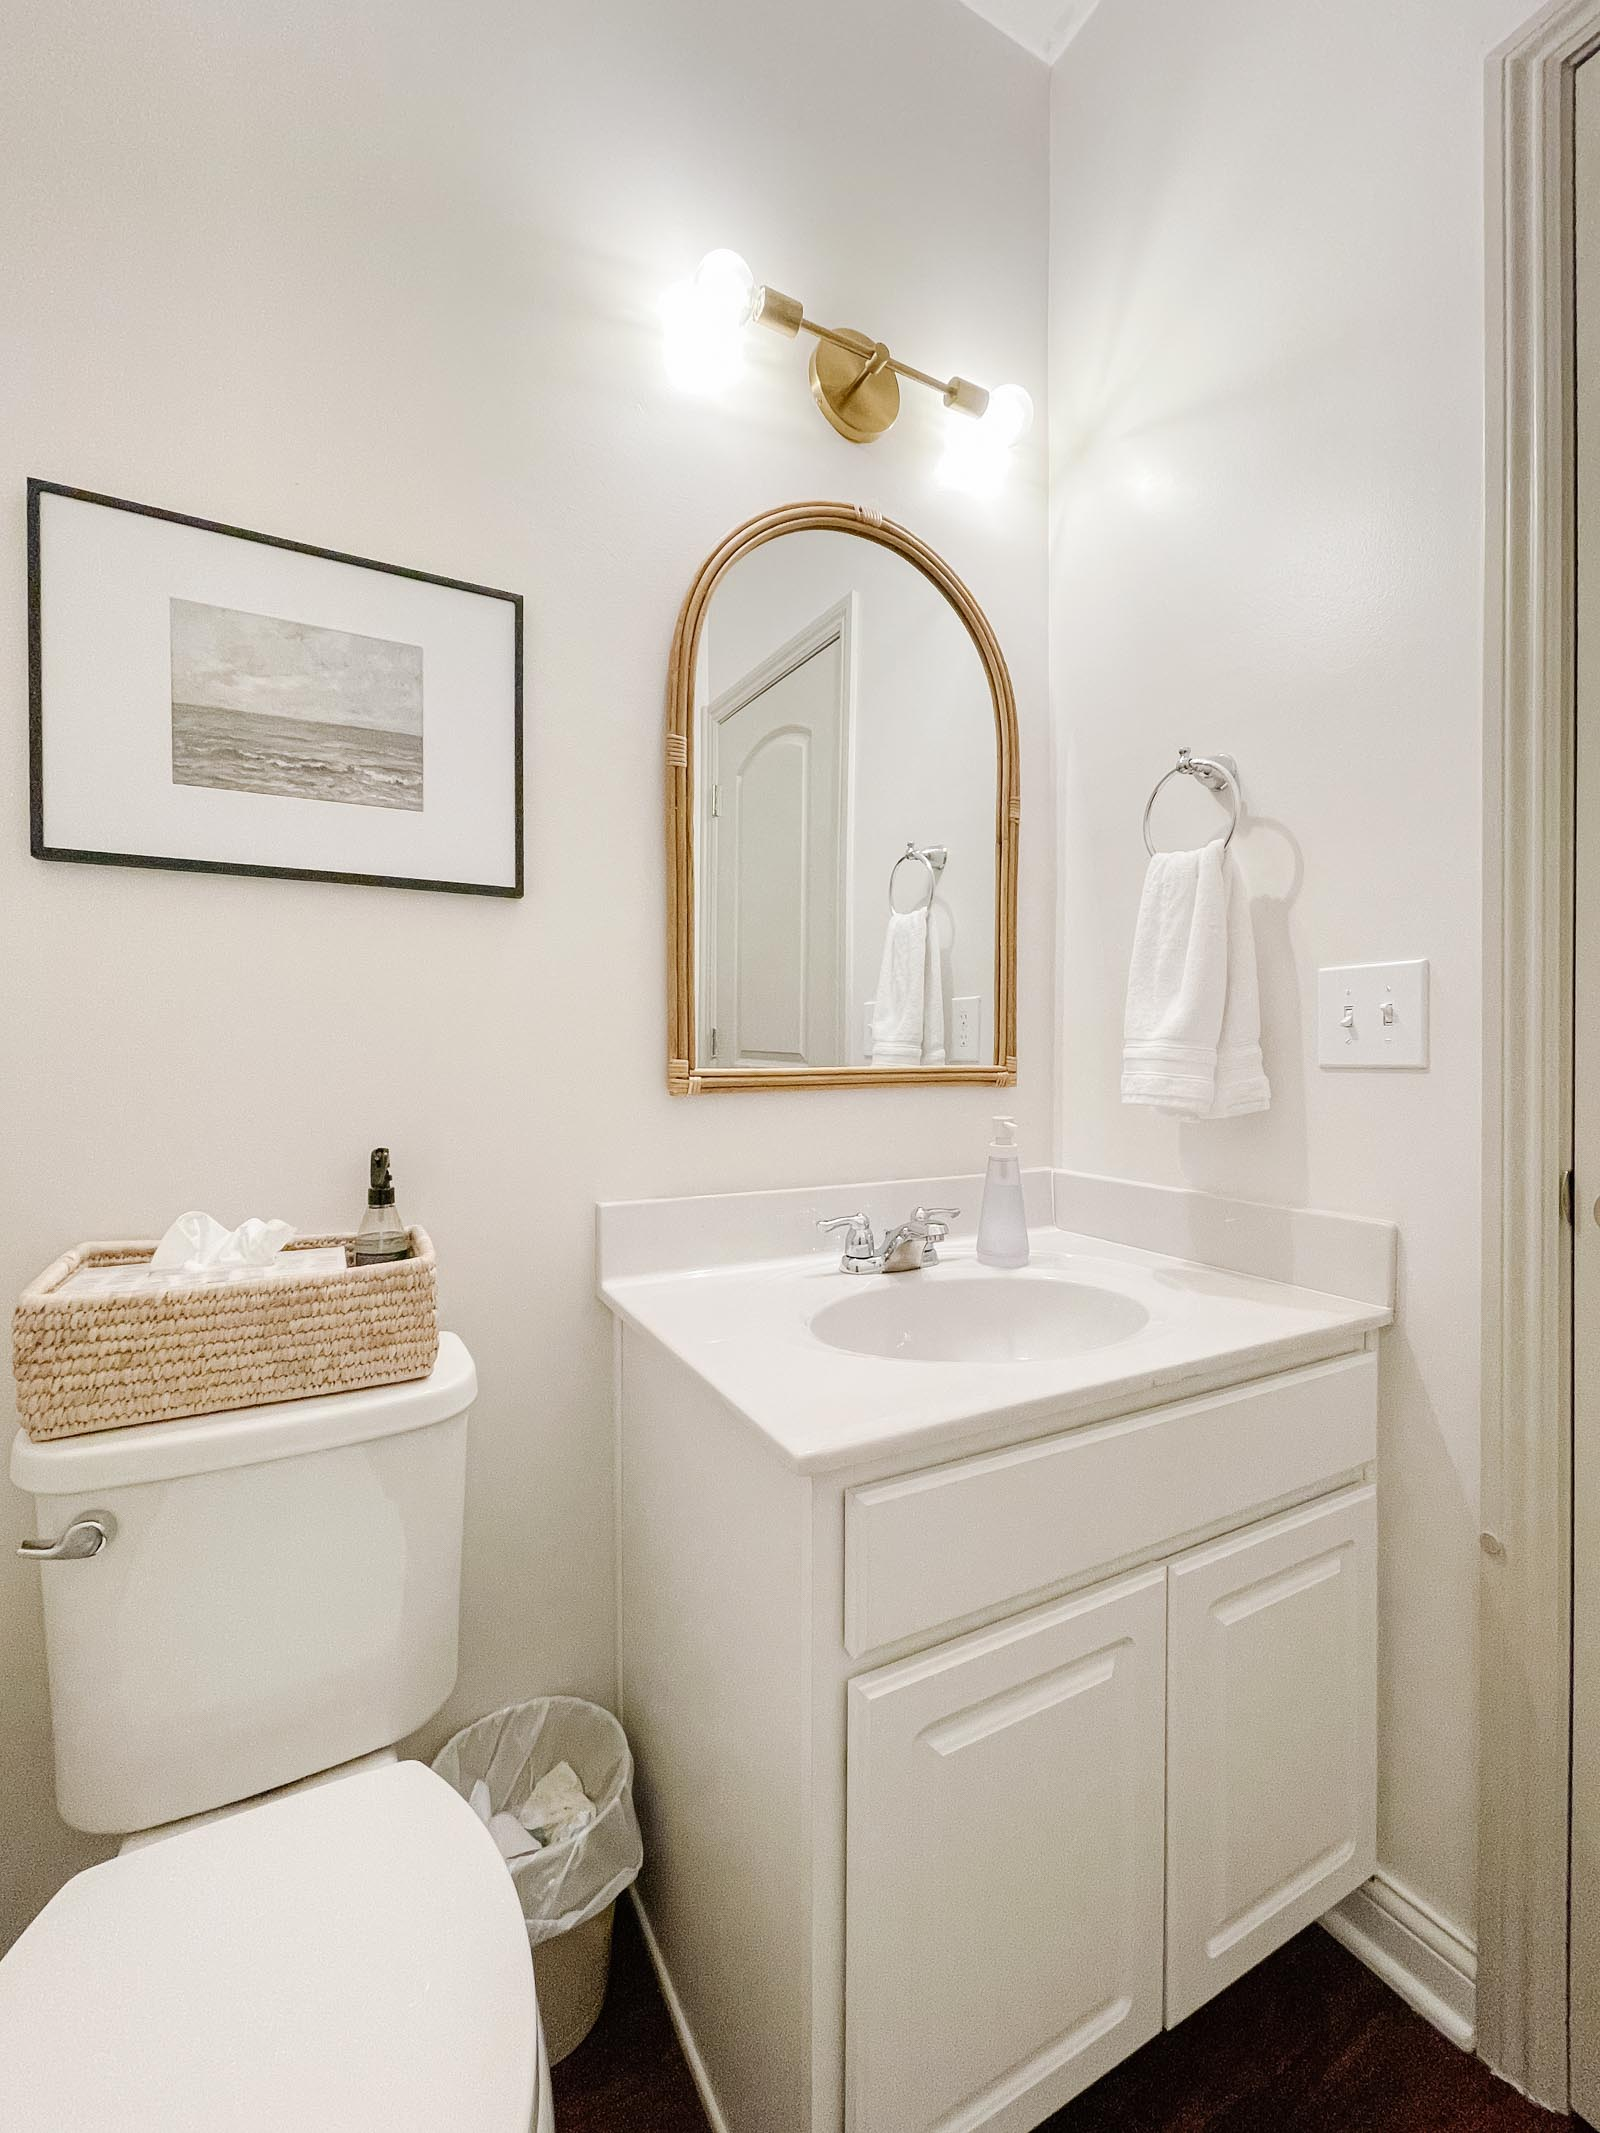 Powder Room Before - rattan arched wall mirror, modern brass light fixture, white cabinetry and toilet